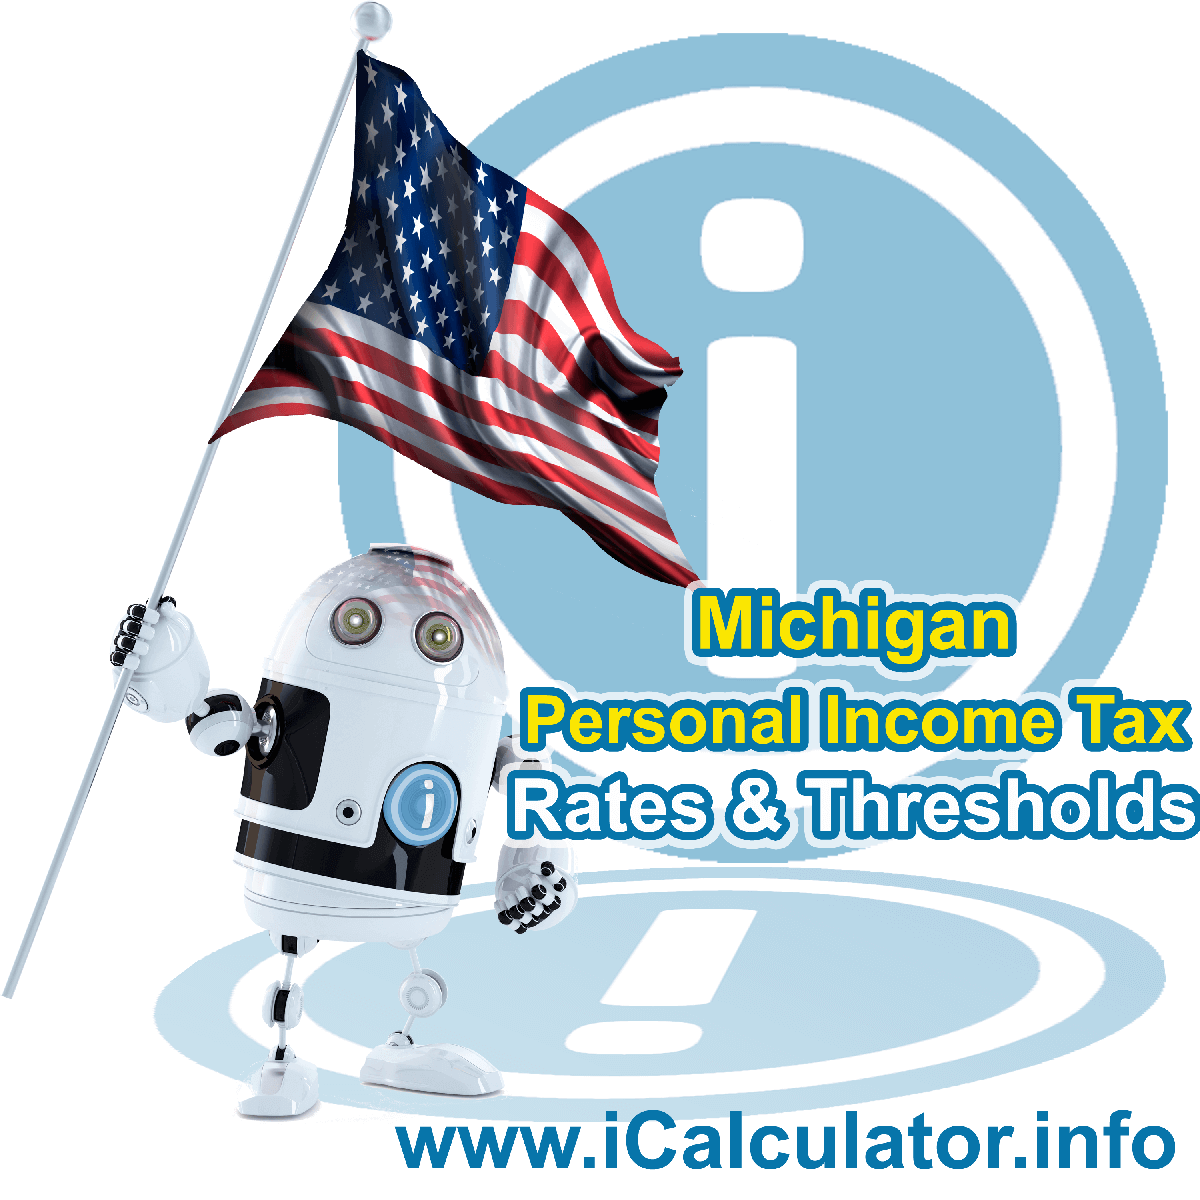 Michigan State Tax Tables 2017. This image displays details of the Michigan State Tax Tables for the 2017 tax return year which is provided in support of the 2017 US Tax Calculator